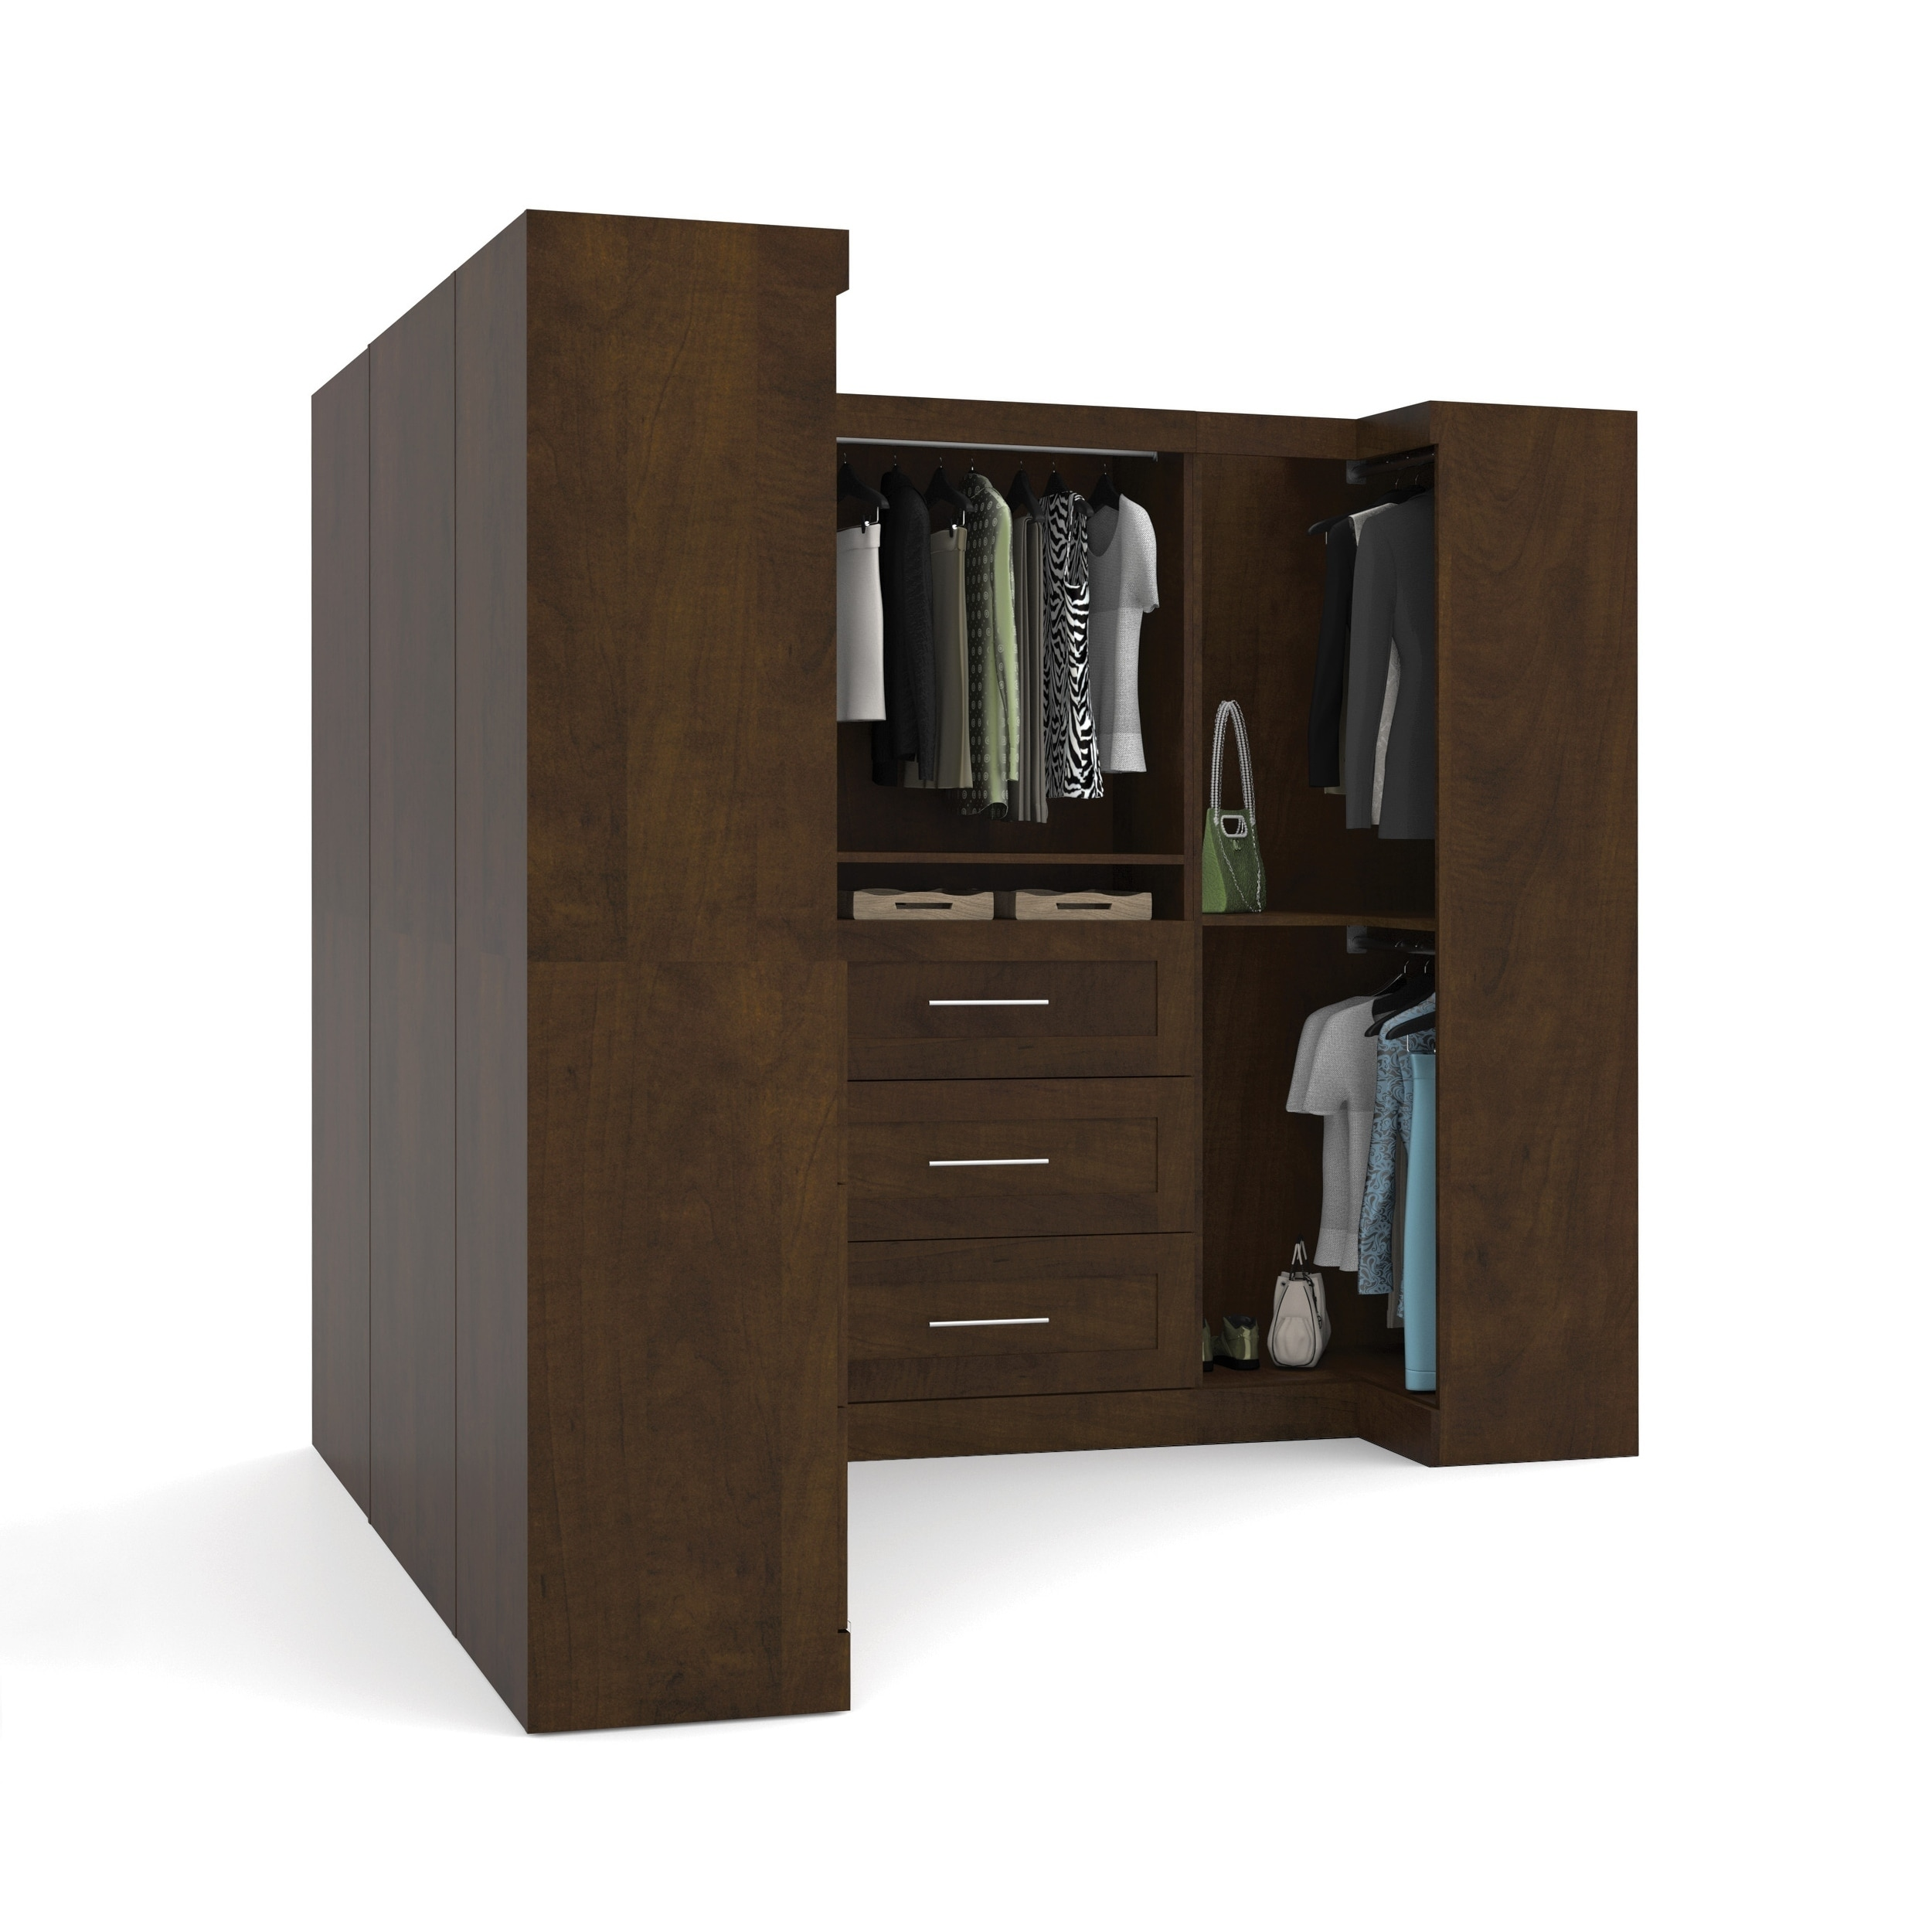 Merveilleux Shop Pur By Bestar Optimum Corner Walk In Closet Organizer Set   Free  Shipping Today   Overstock.com   9626748